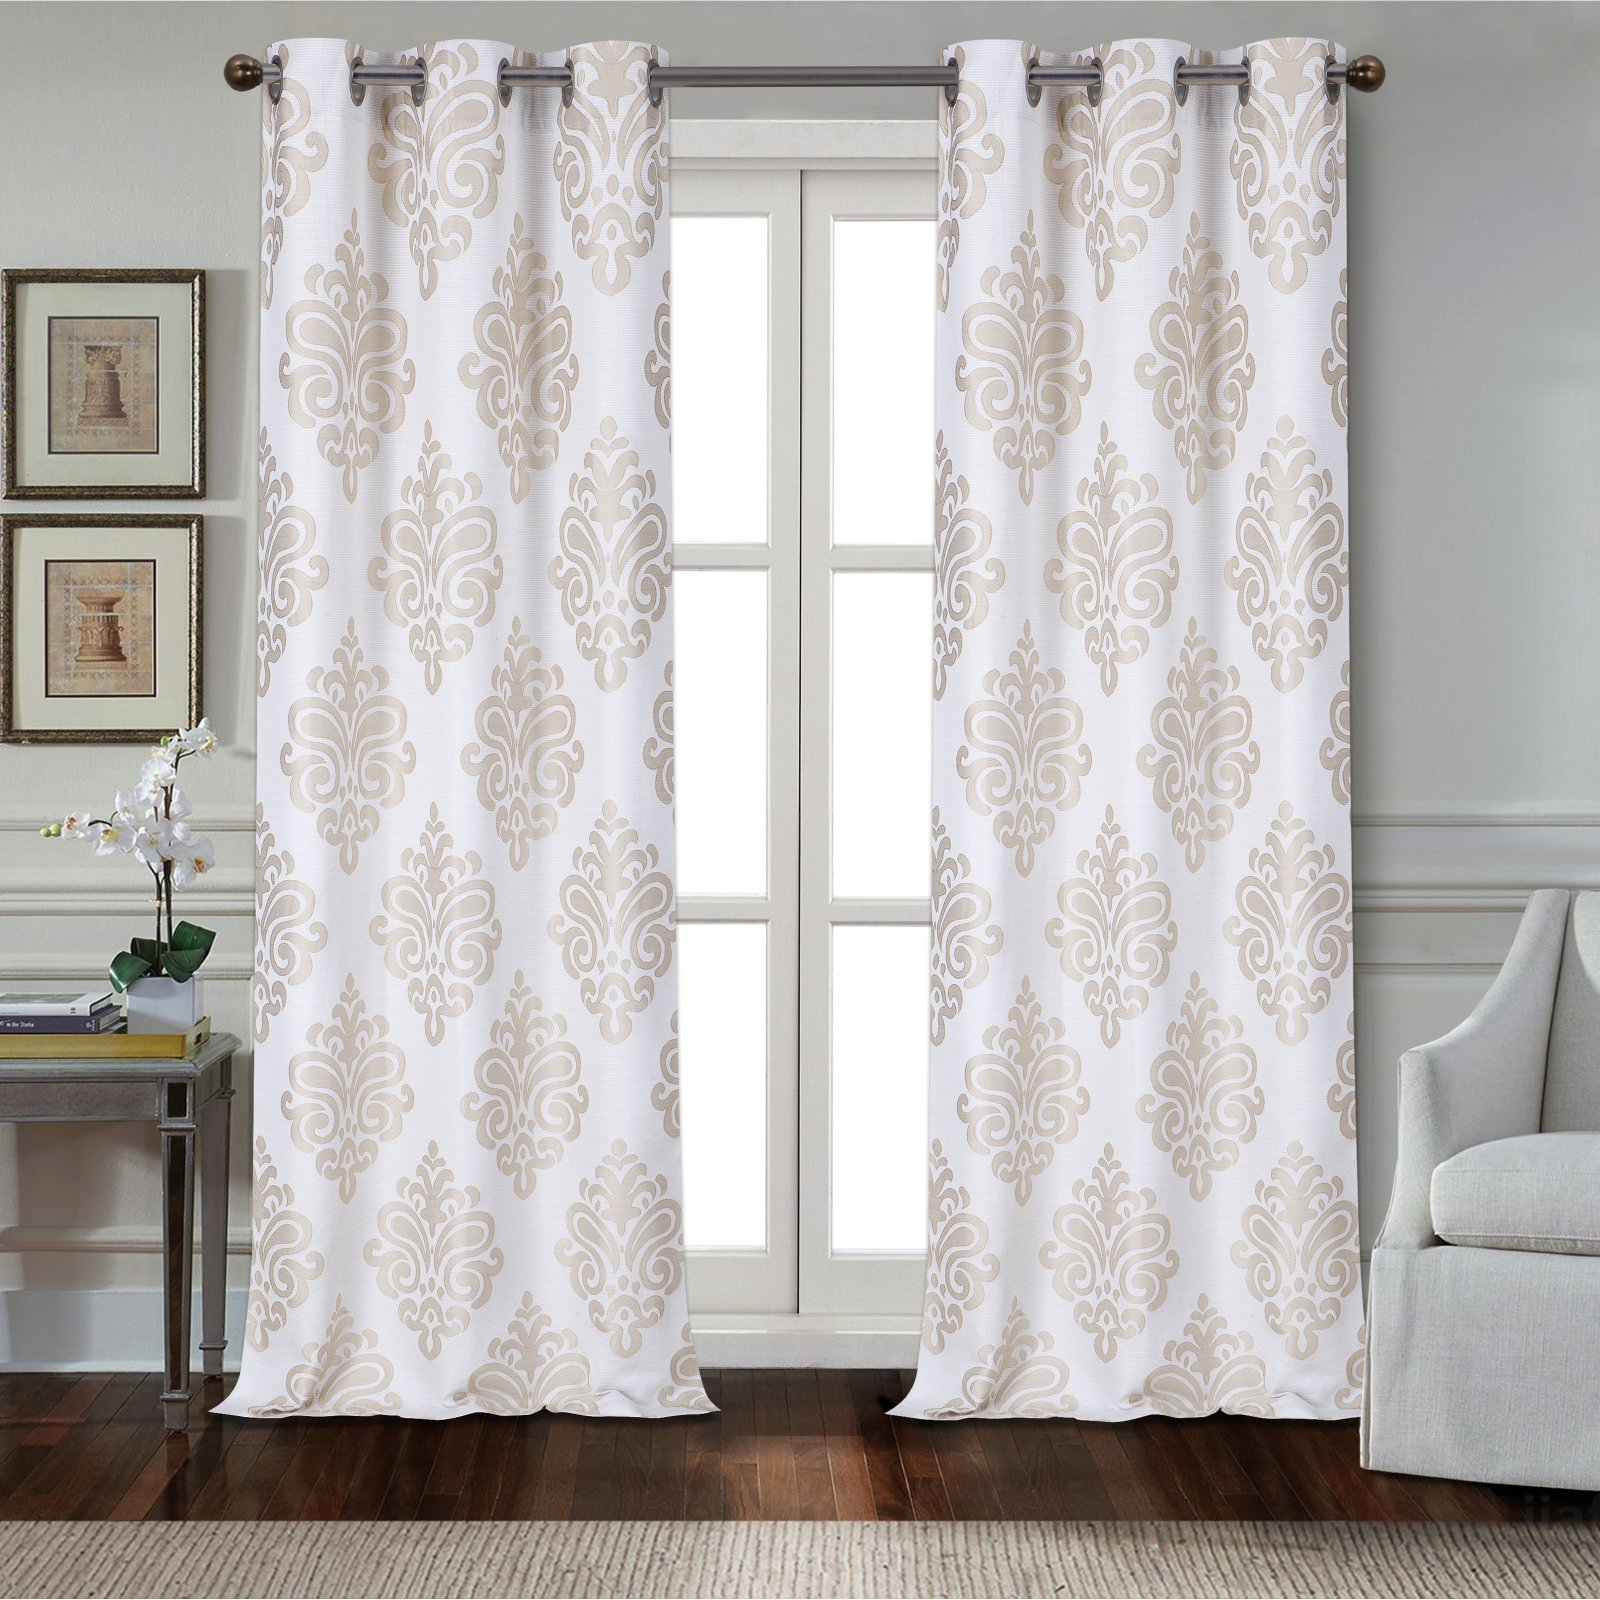 Dainty Home Marquise Textured Applique Grommet Window Regarding Lydia Ruffle Window Curtain Panel Pairs (View 5 of 20)